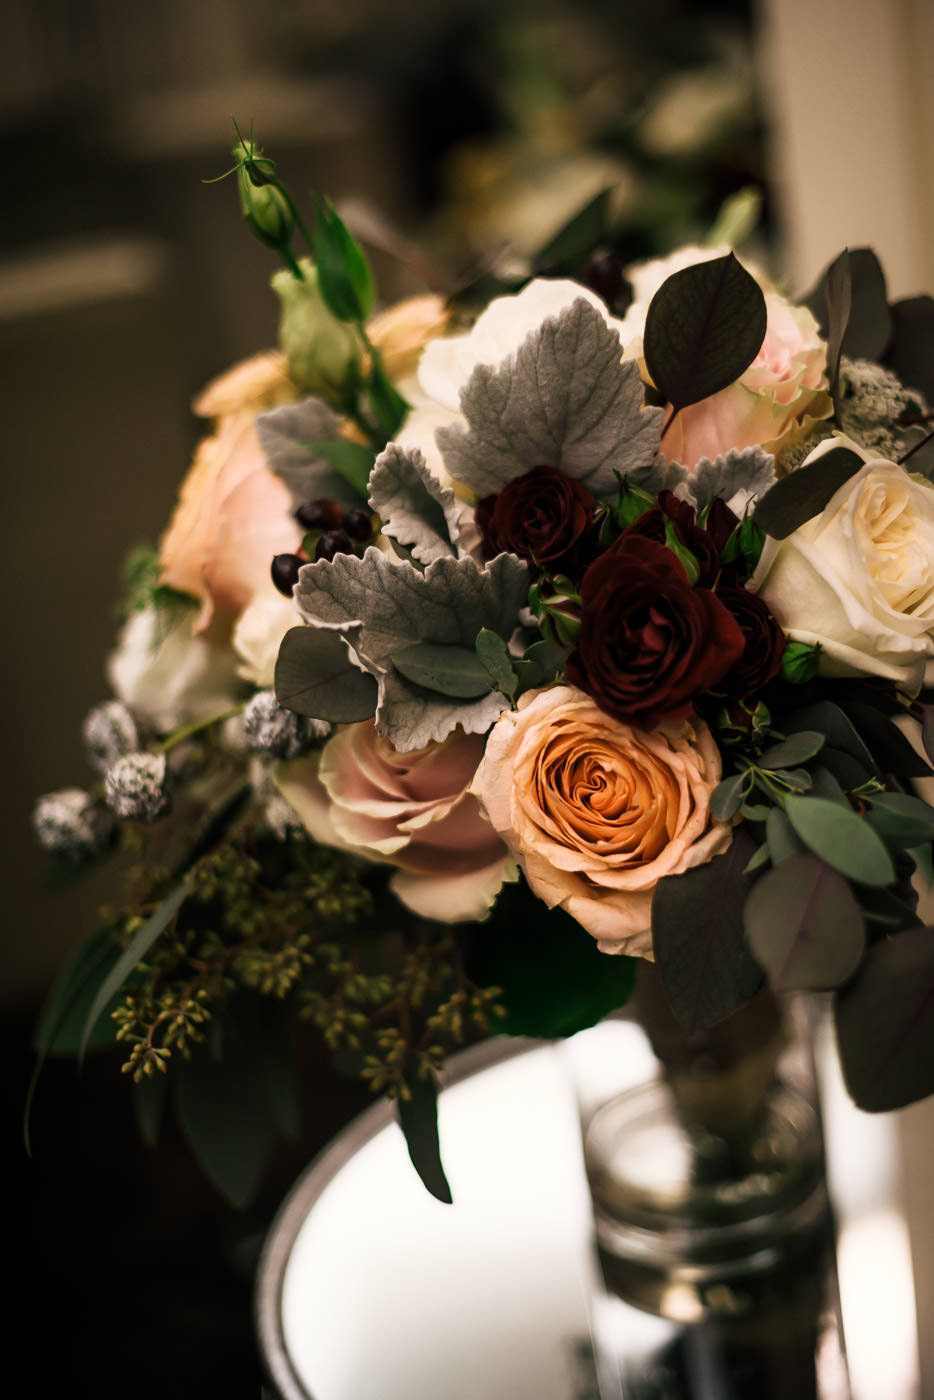 Gorgeous wedding bouquet in a vase.